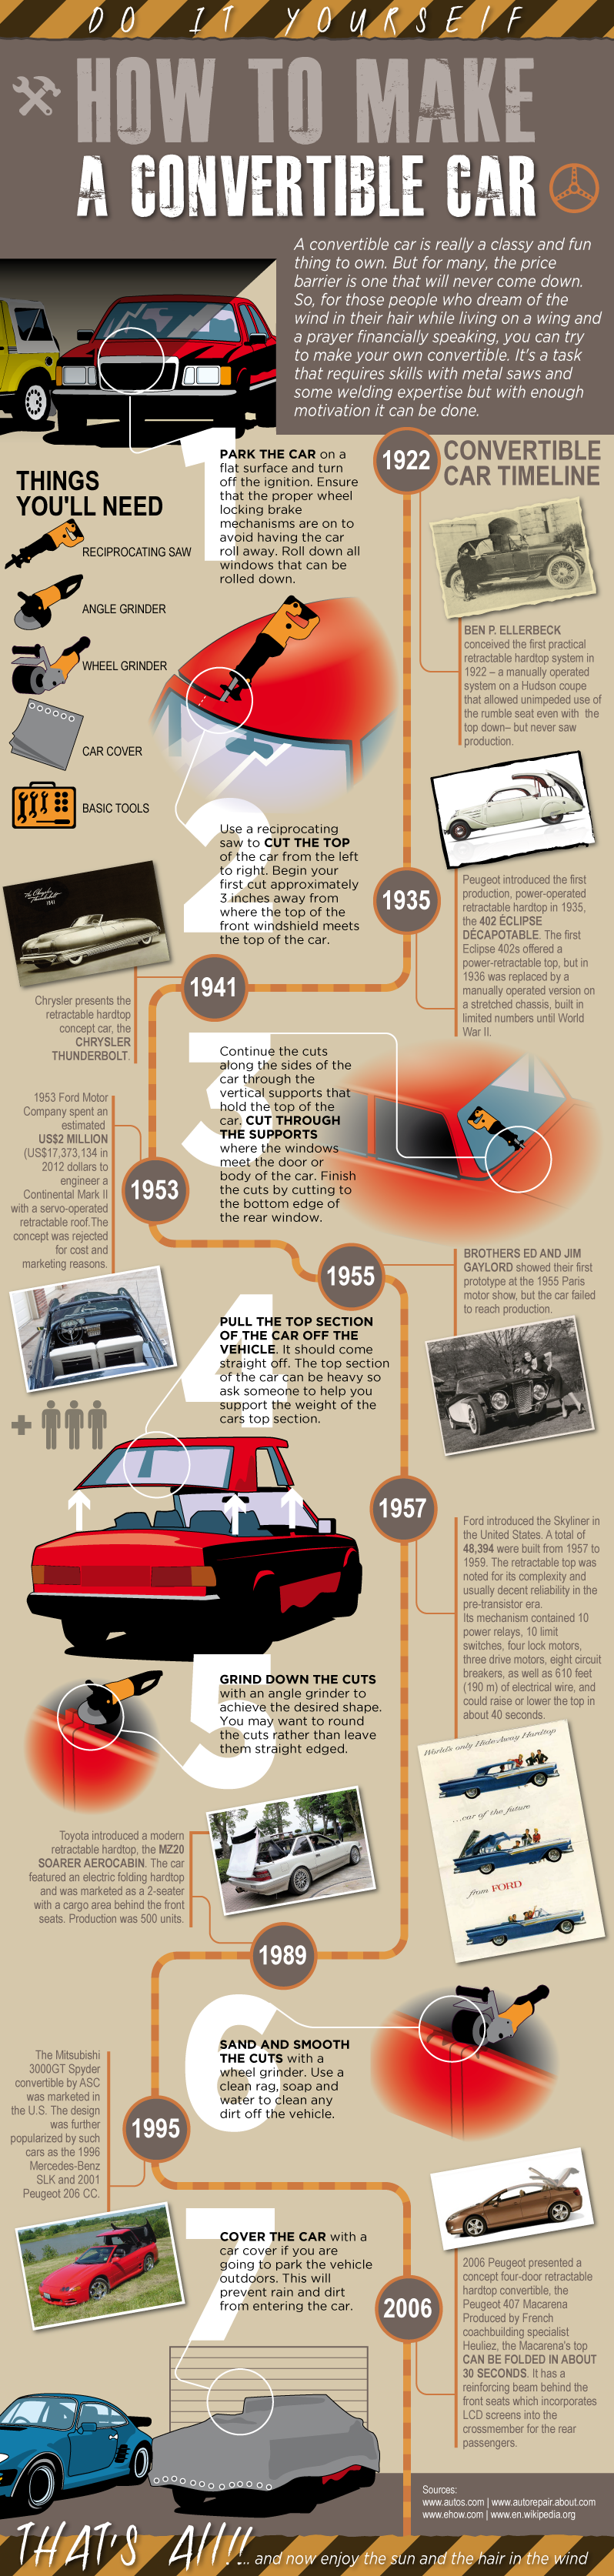 Mod Your Car to a Convertible #infographic